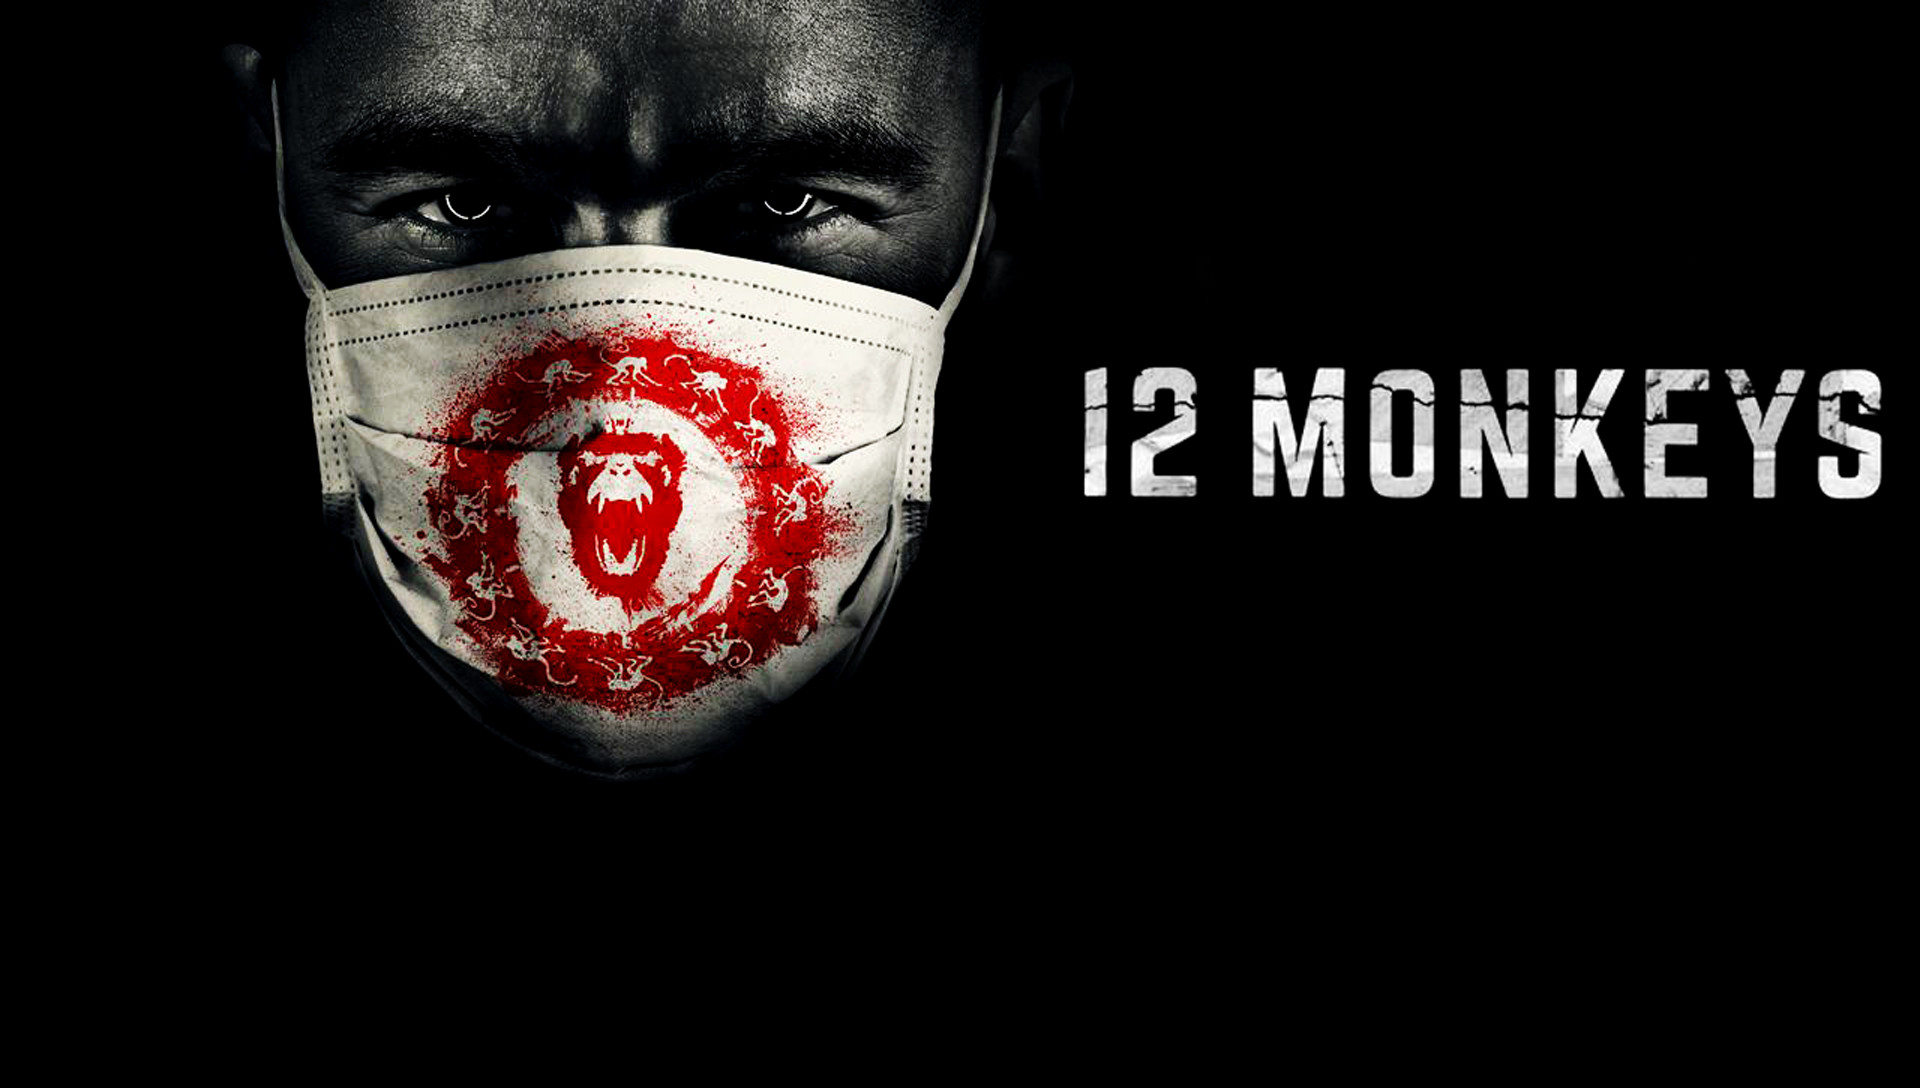 Res: 1920x1088, 12 Monkeys HD Wallpapers